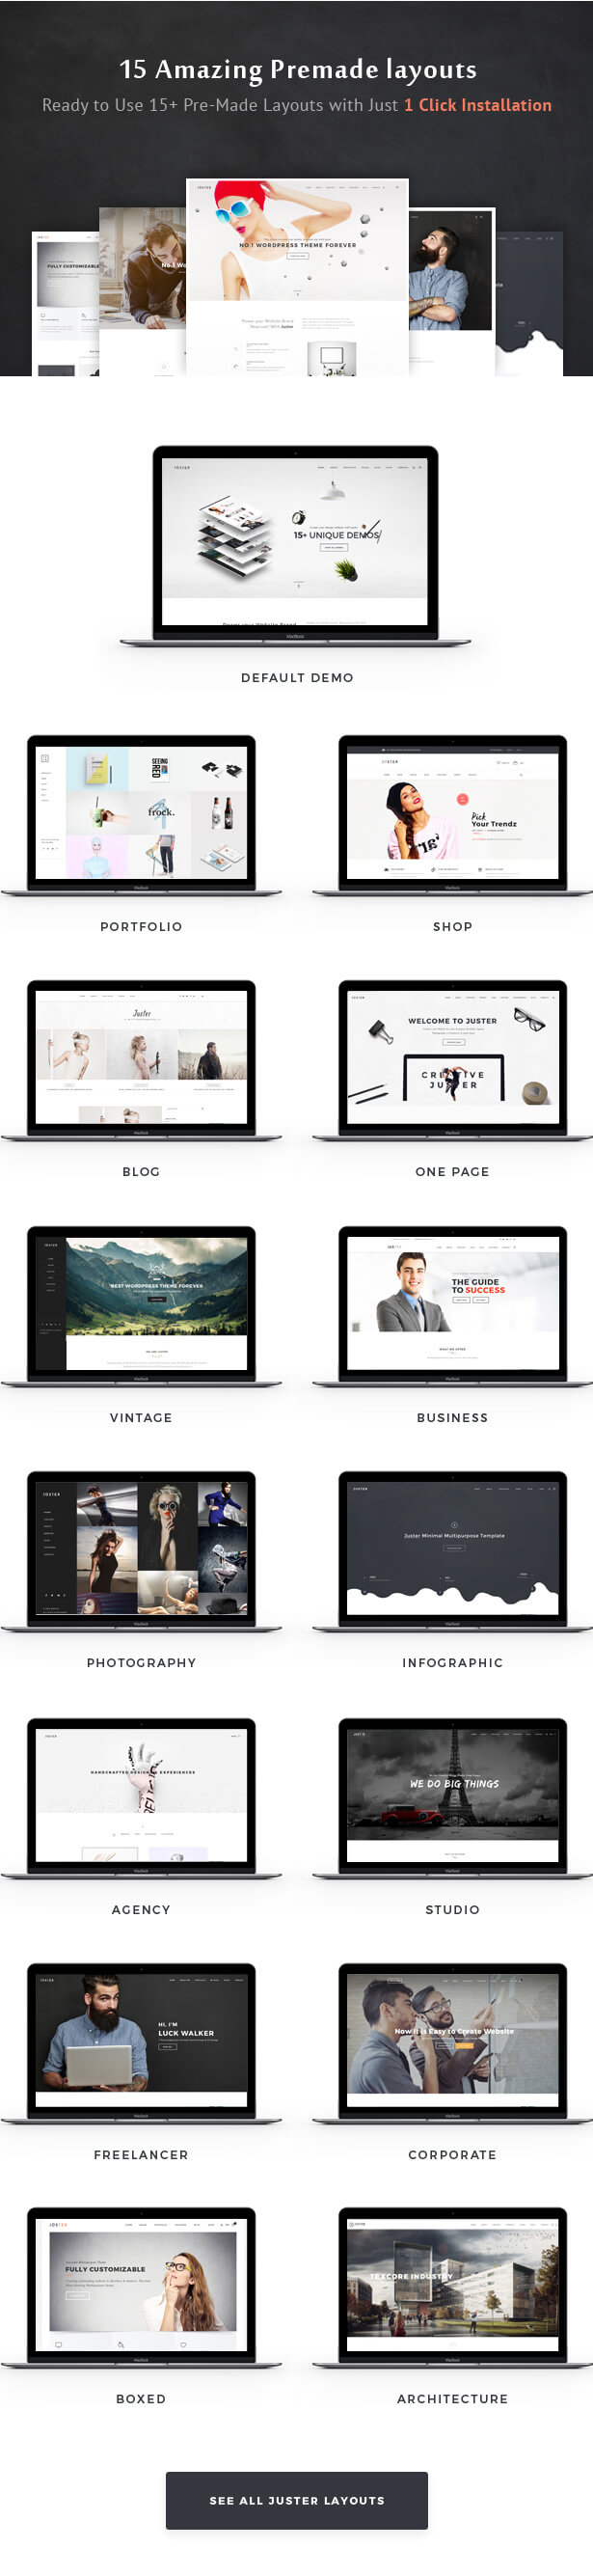 Juster - Multi-Purpose WordPress Theme - 3